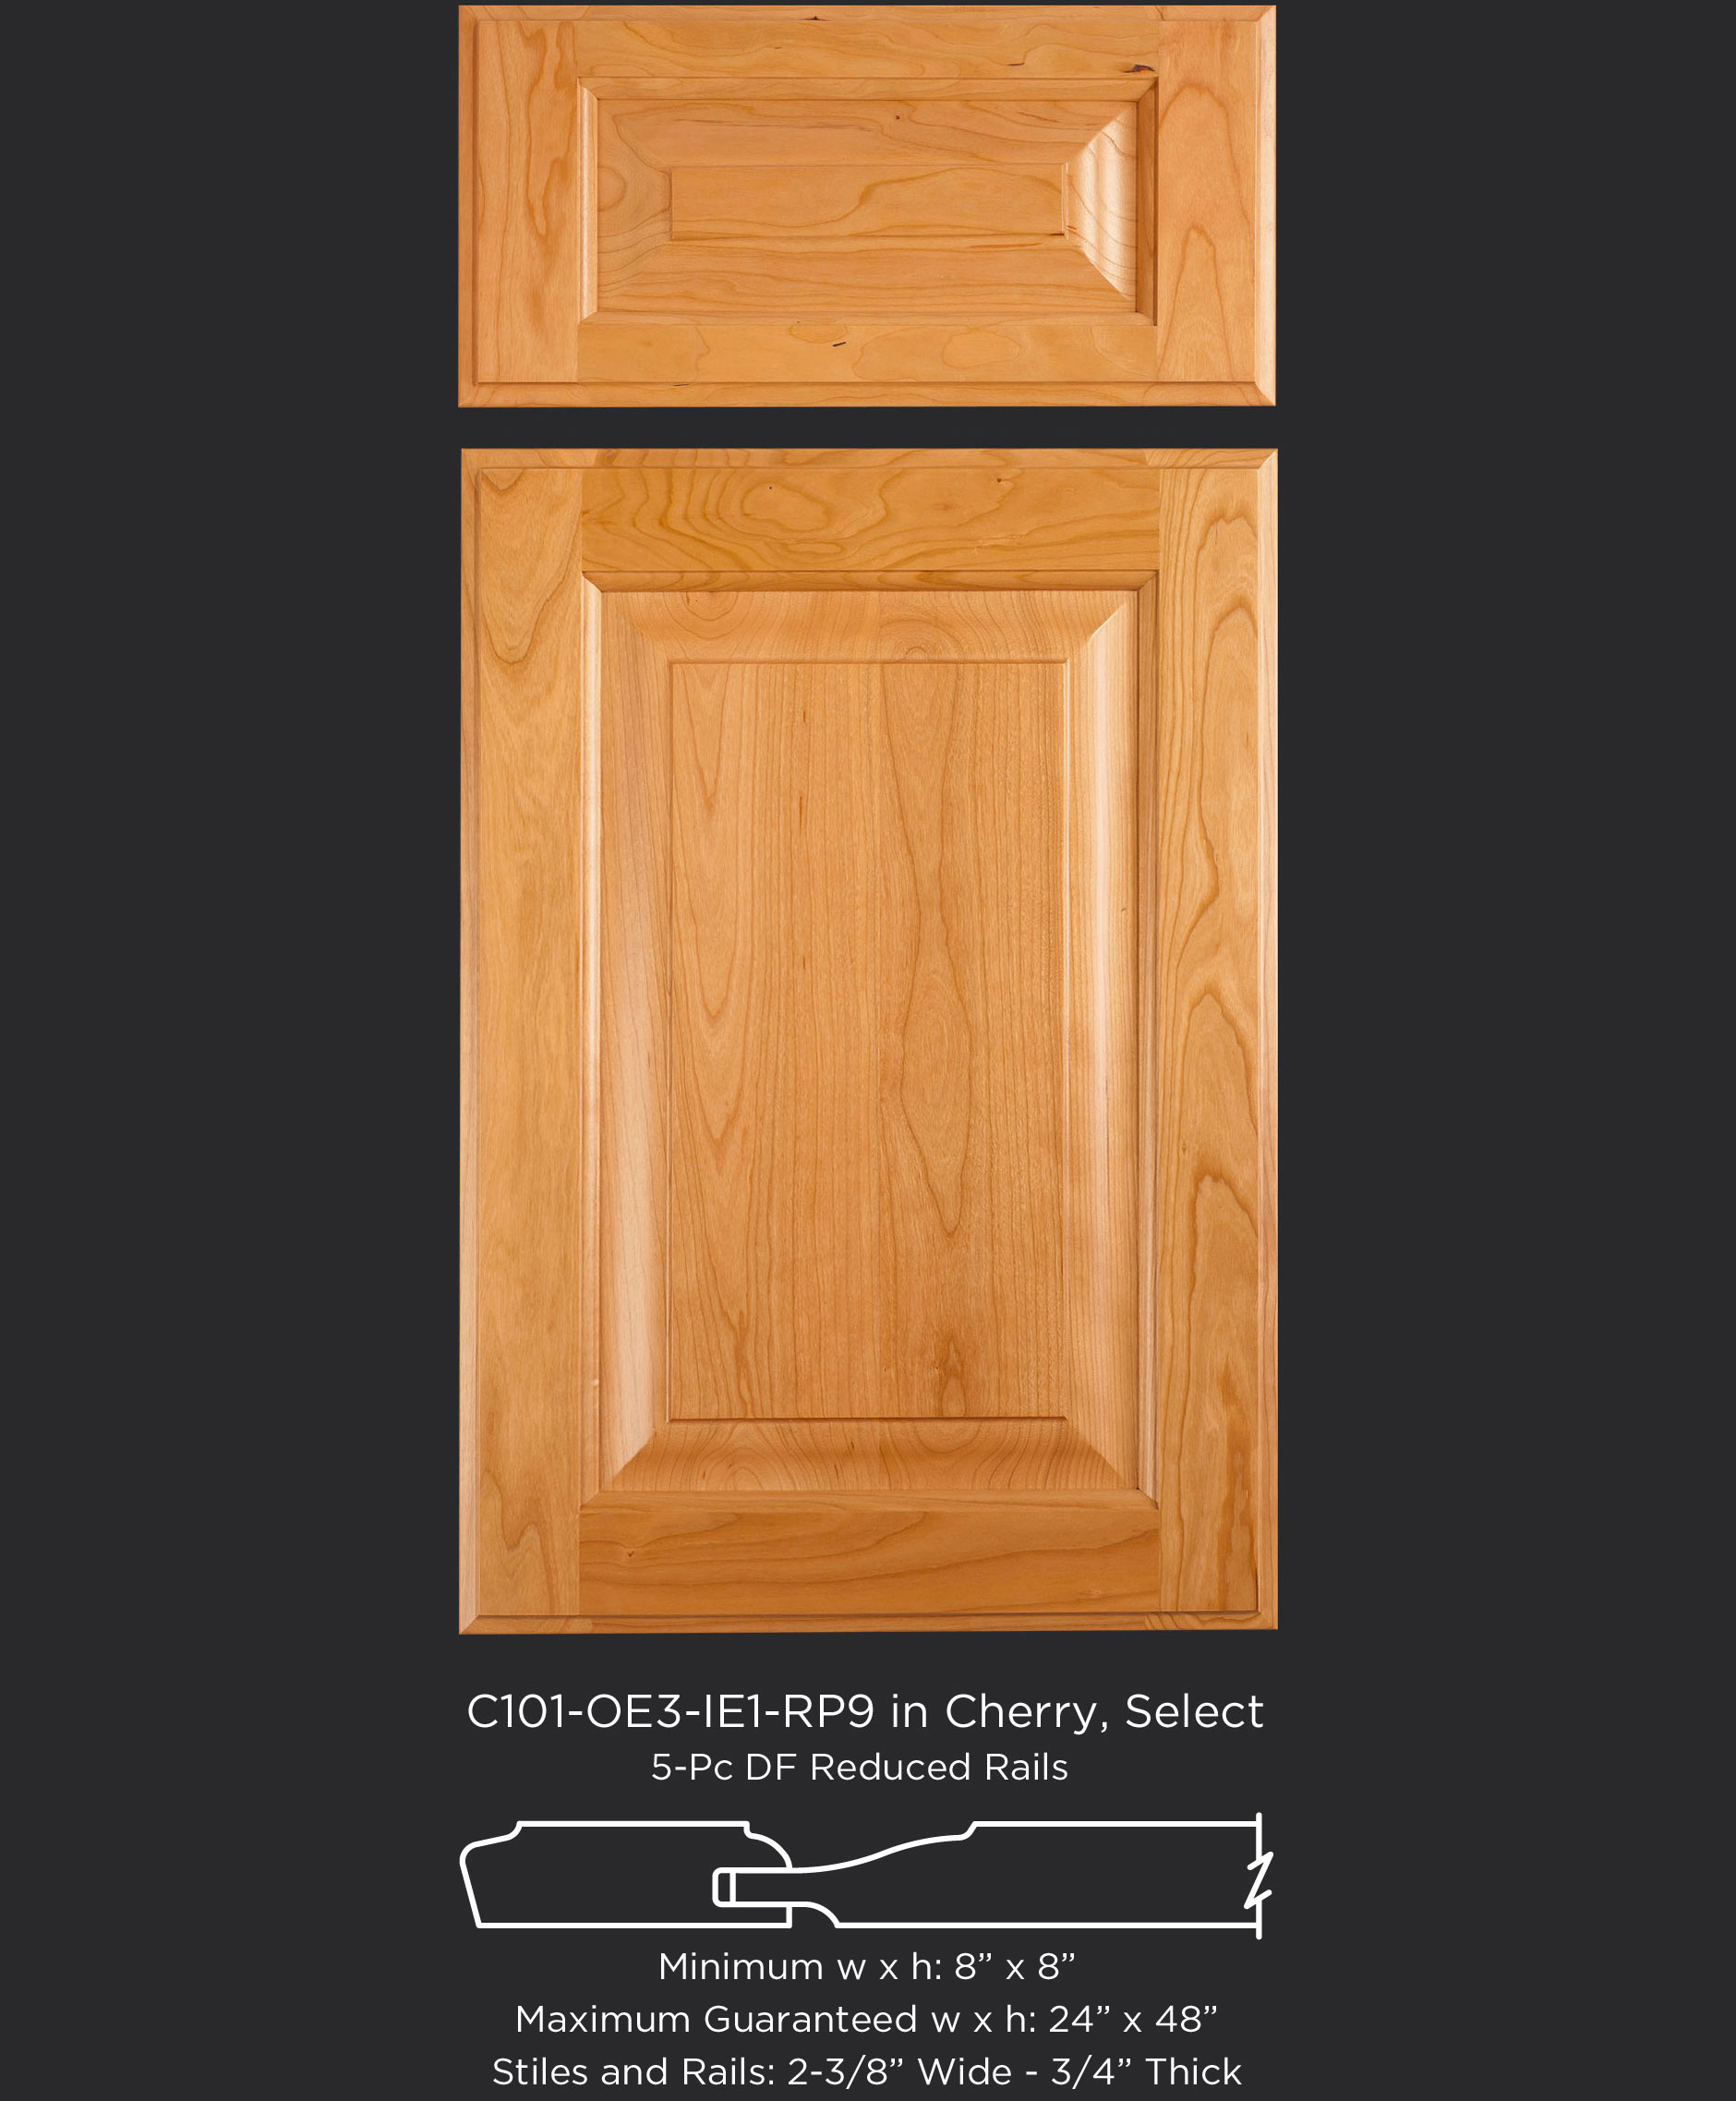 Cope and Stick Cabinet Door C101 OE3-IE1-RP9 Cherry, Select and 5-piece drawer front with reduced rails